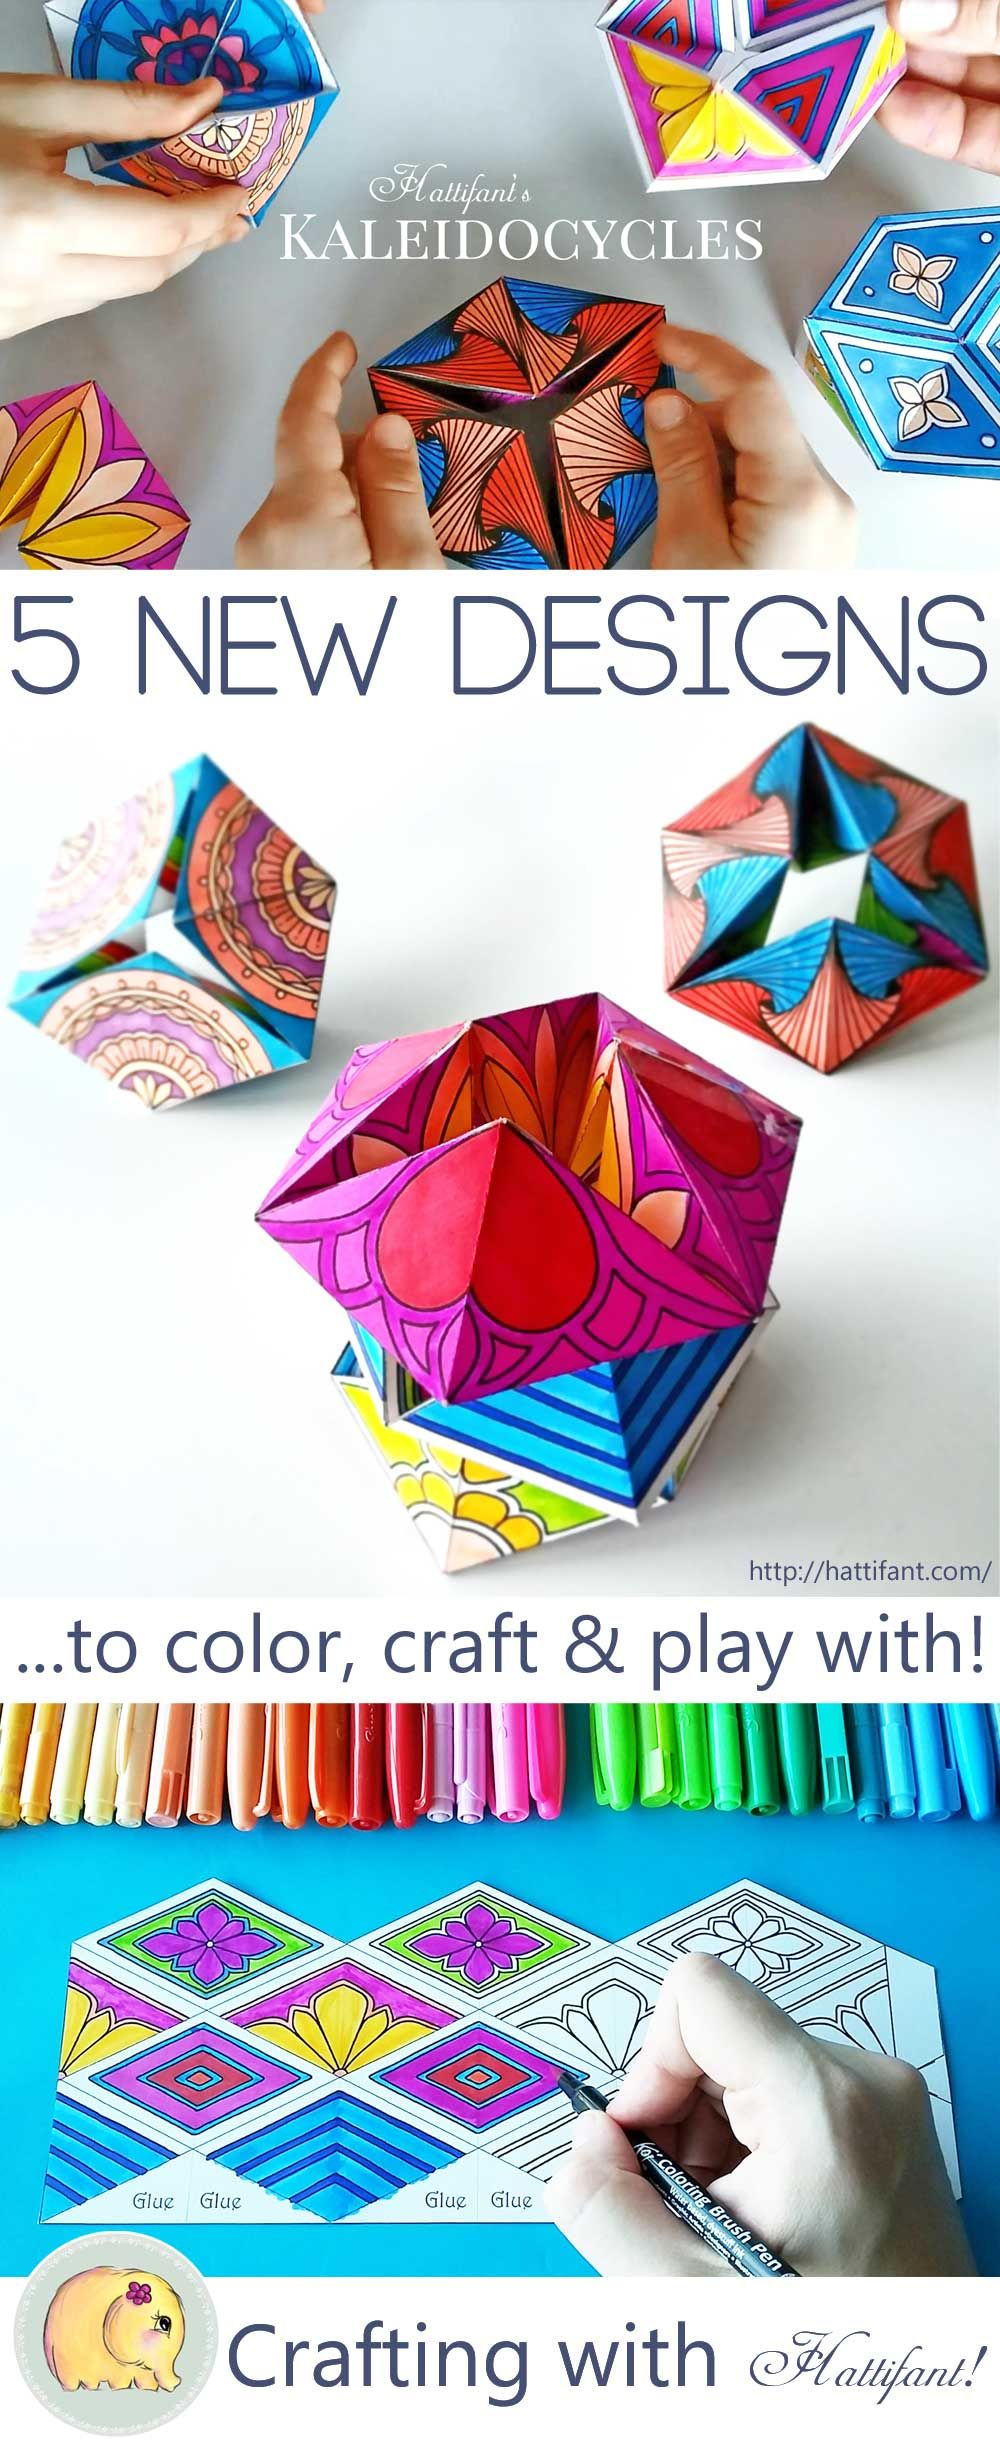 Hattifants new series of kaleidocycles flextangles a mechanical hattifants new series of kaleidocycles flextangles a mechanical papertoy to color and craft free download jeuxipadfo Choice Image